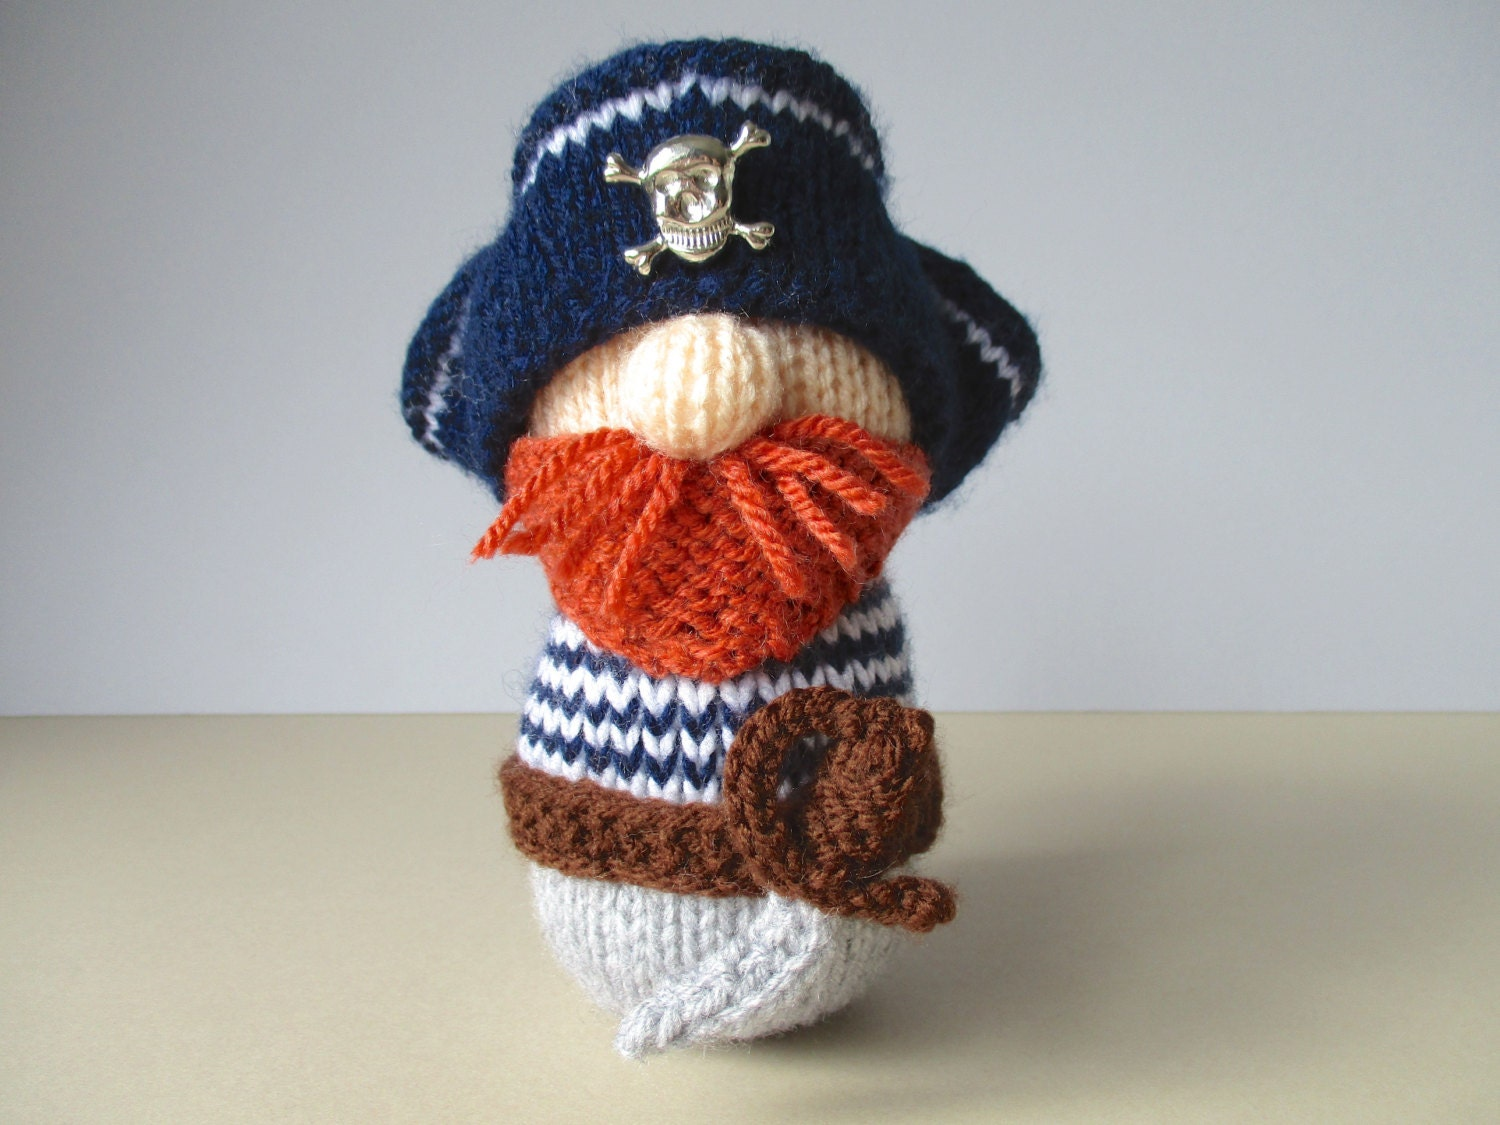 Knitting Patterns For Toys On Etsy : Pirate Pete toy knitting patterns